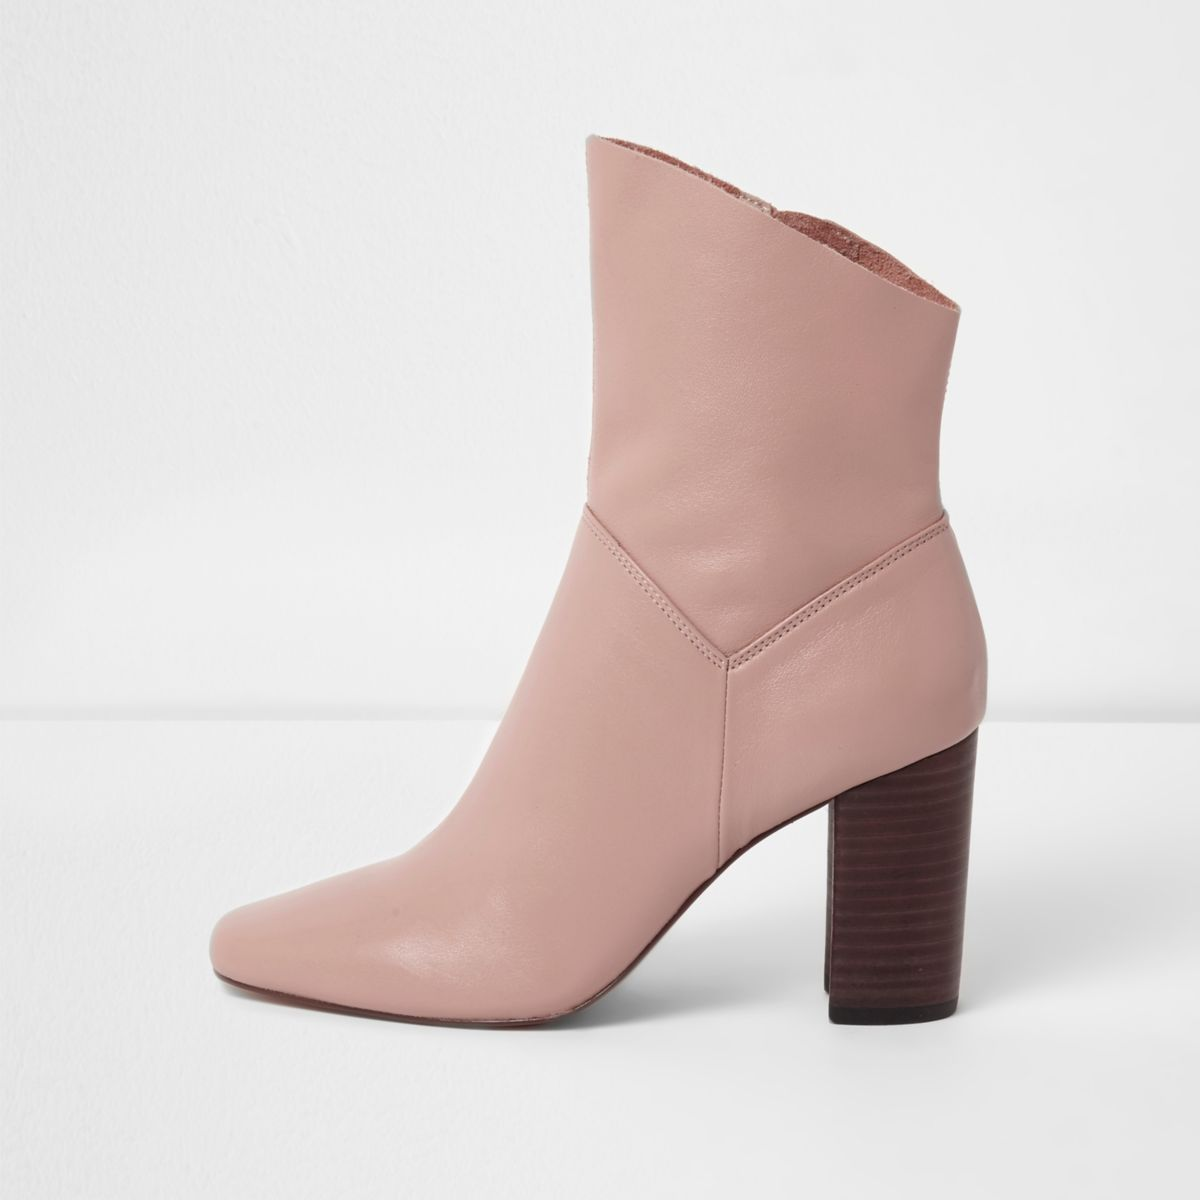 Nude leather block heel boots